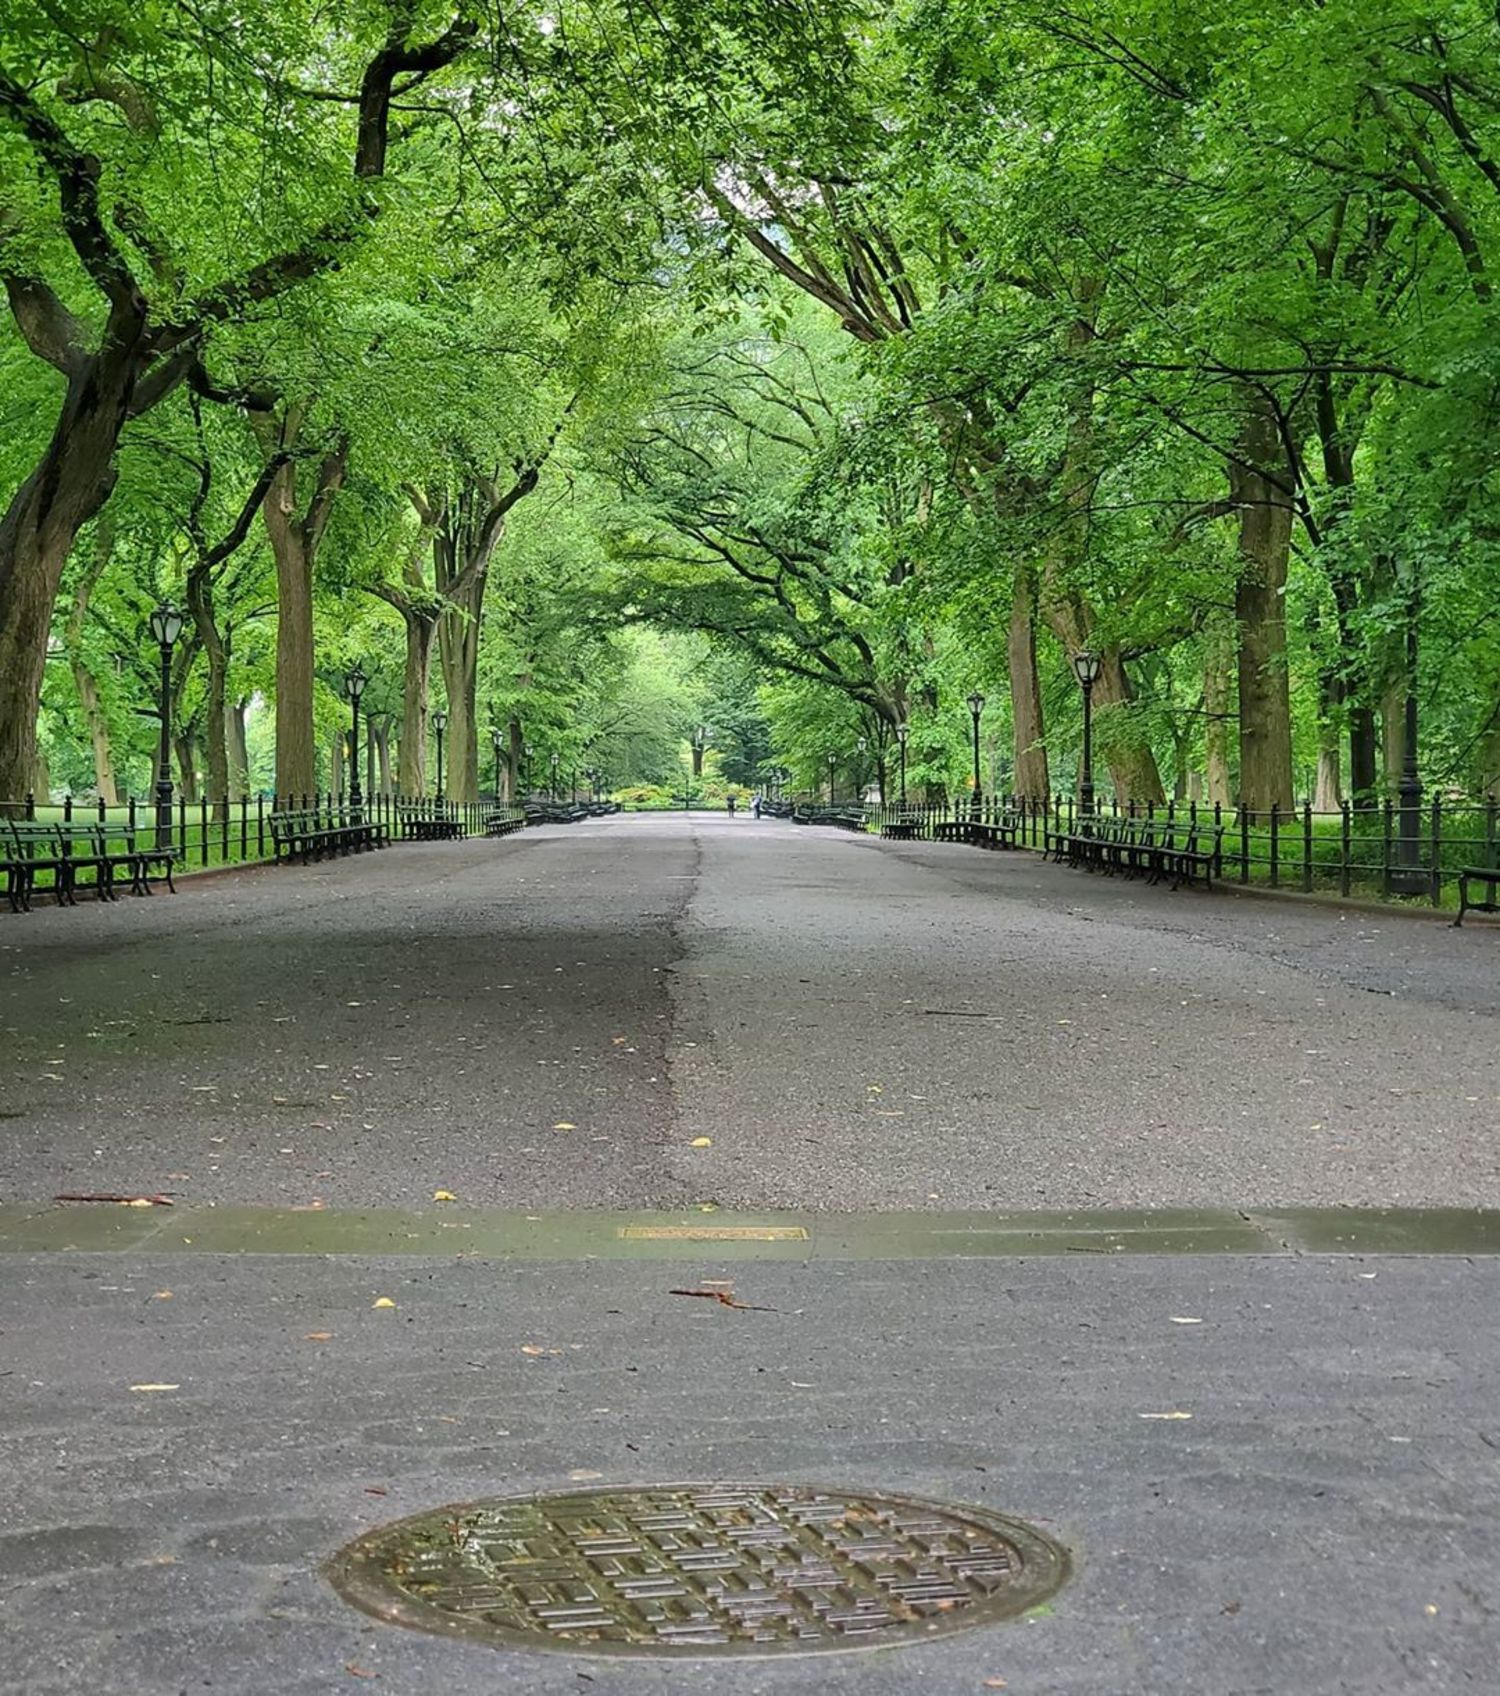 The Mall in Central Park, Manhattan